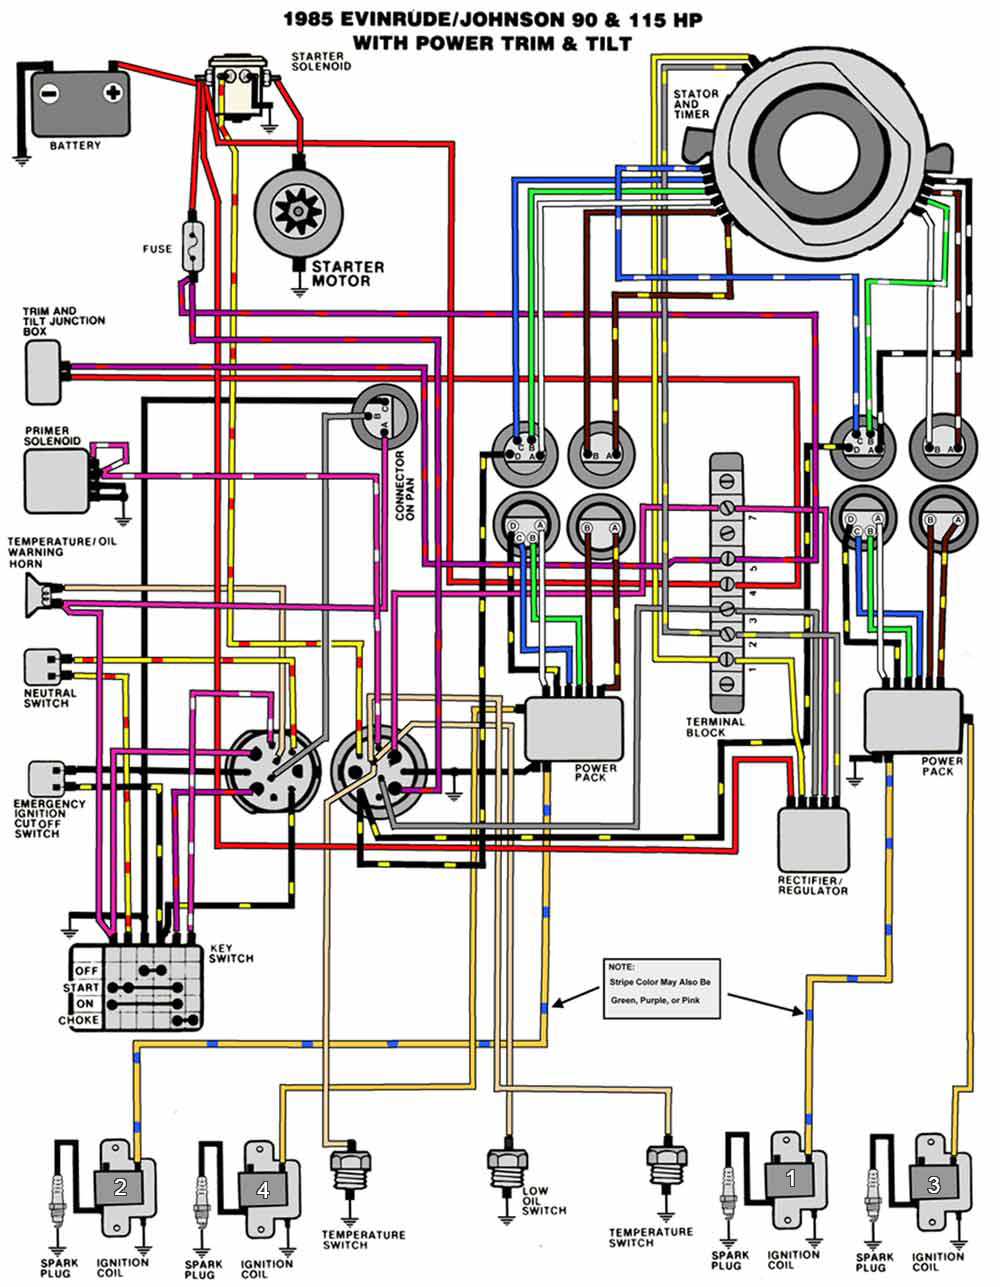 1985_90_115TnT  Yamaha Outboard Wiring Diagram on tilt trim gauge, parts meters speed, for 6hp, for tachometer, f25tlry,